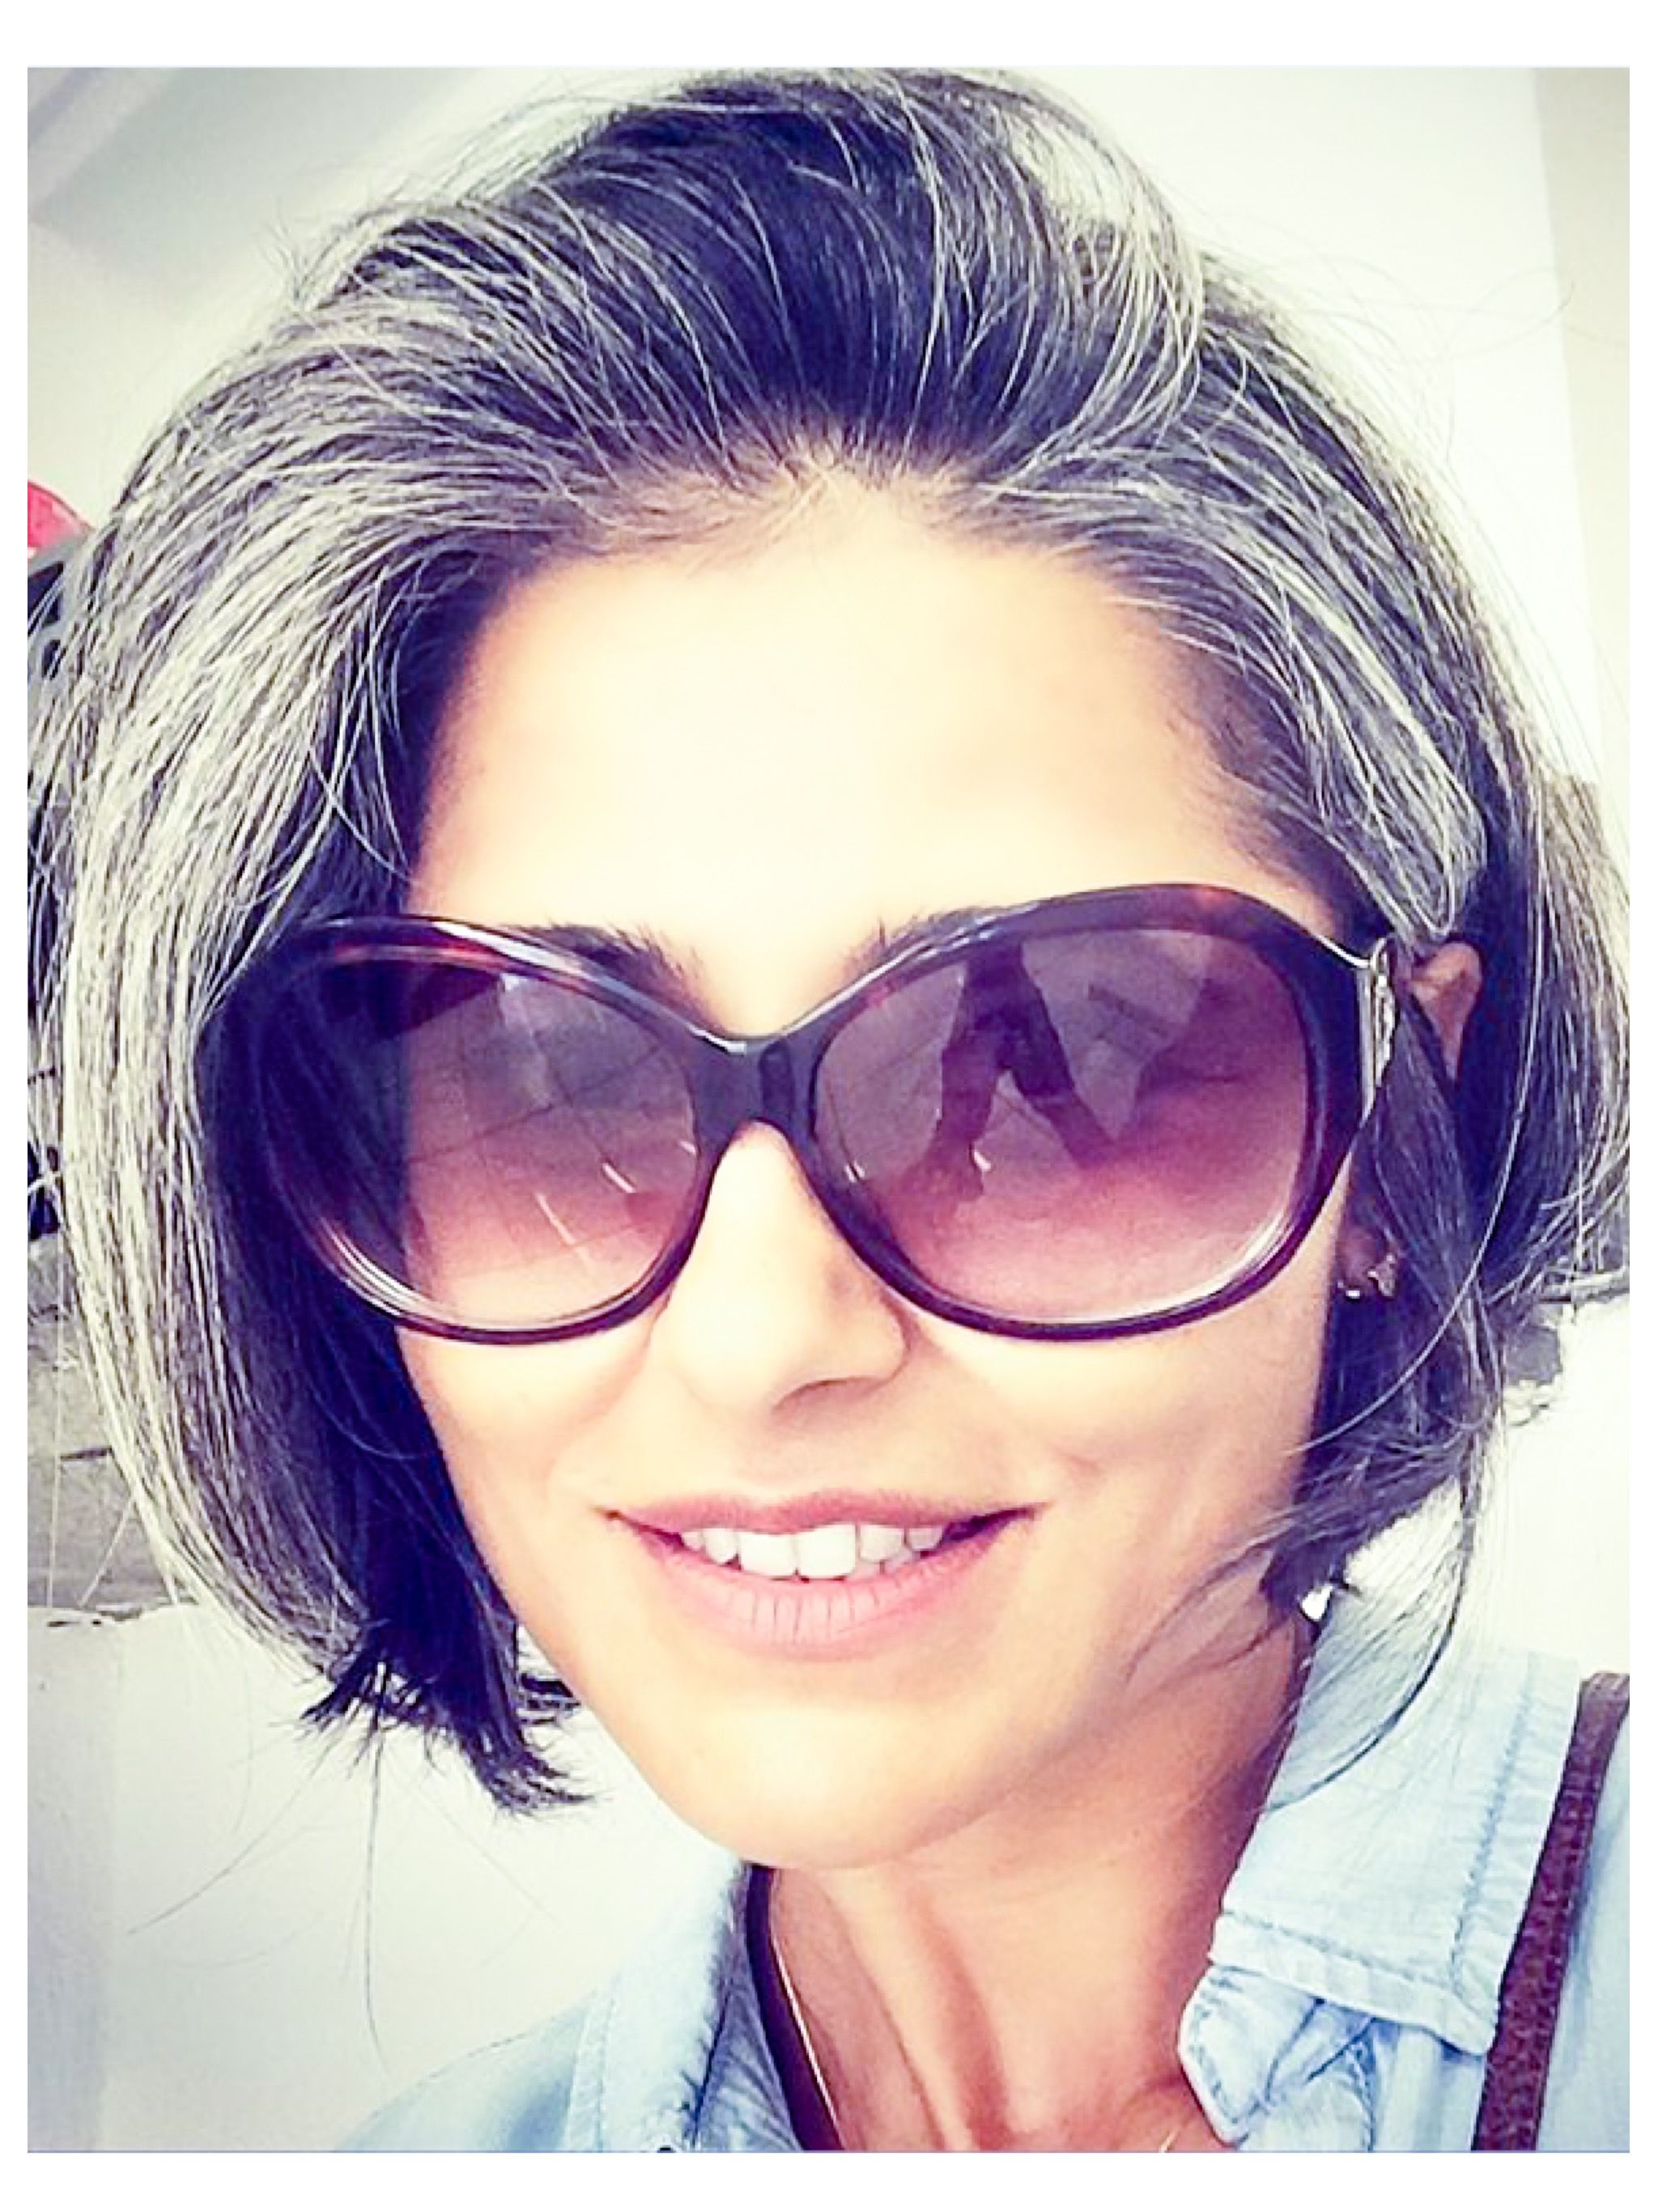 Pindondenorma On Gray Hair Divas – Divinas Canas | Pinterest Throughout Short Hairstyles For Salt And Pepper Hair (View 21 of 25)